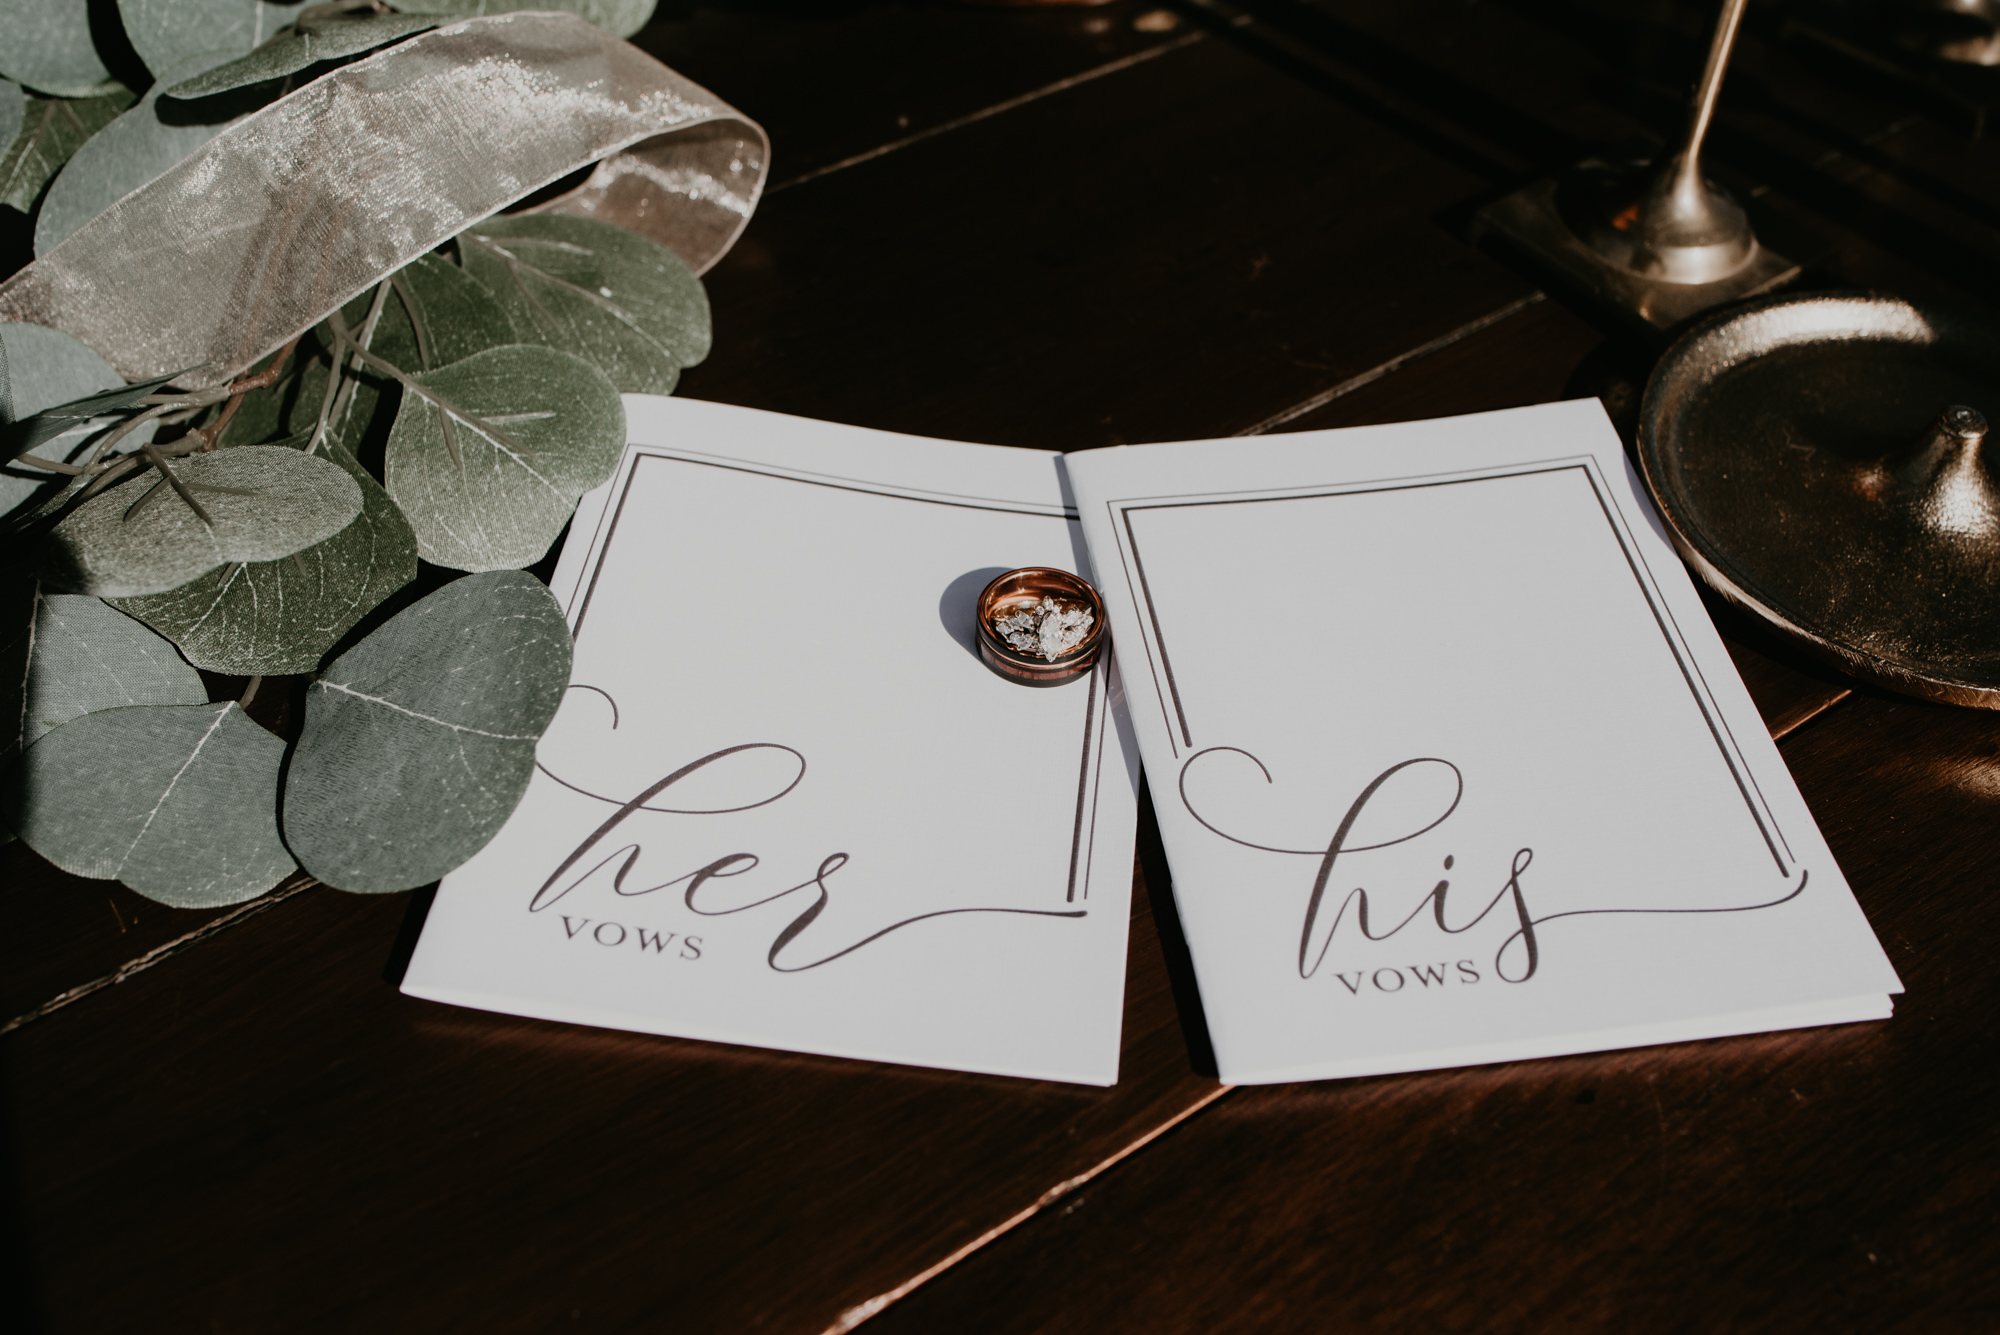 His and Hers calligraphy vows are shown with a wedding ring.